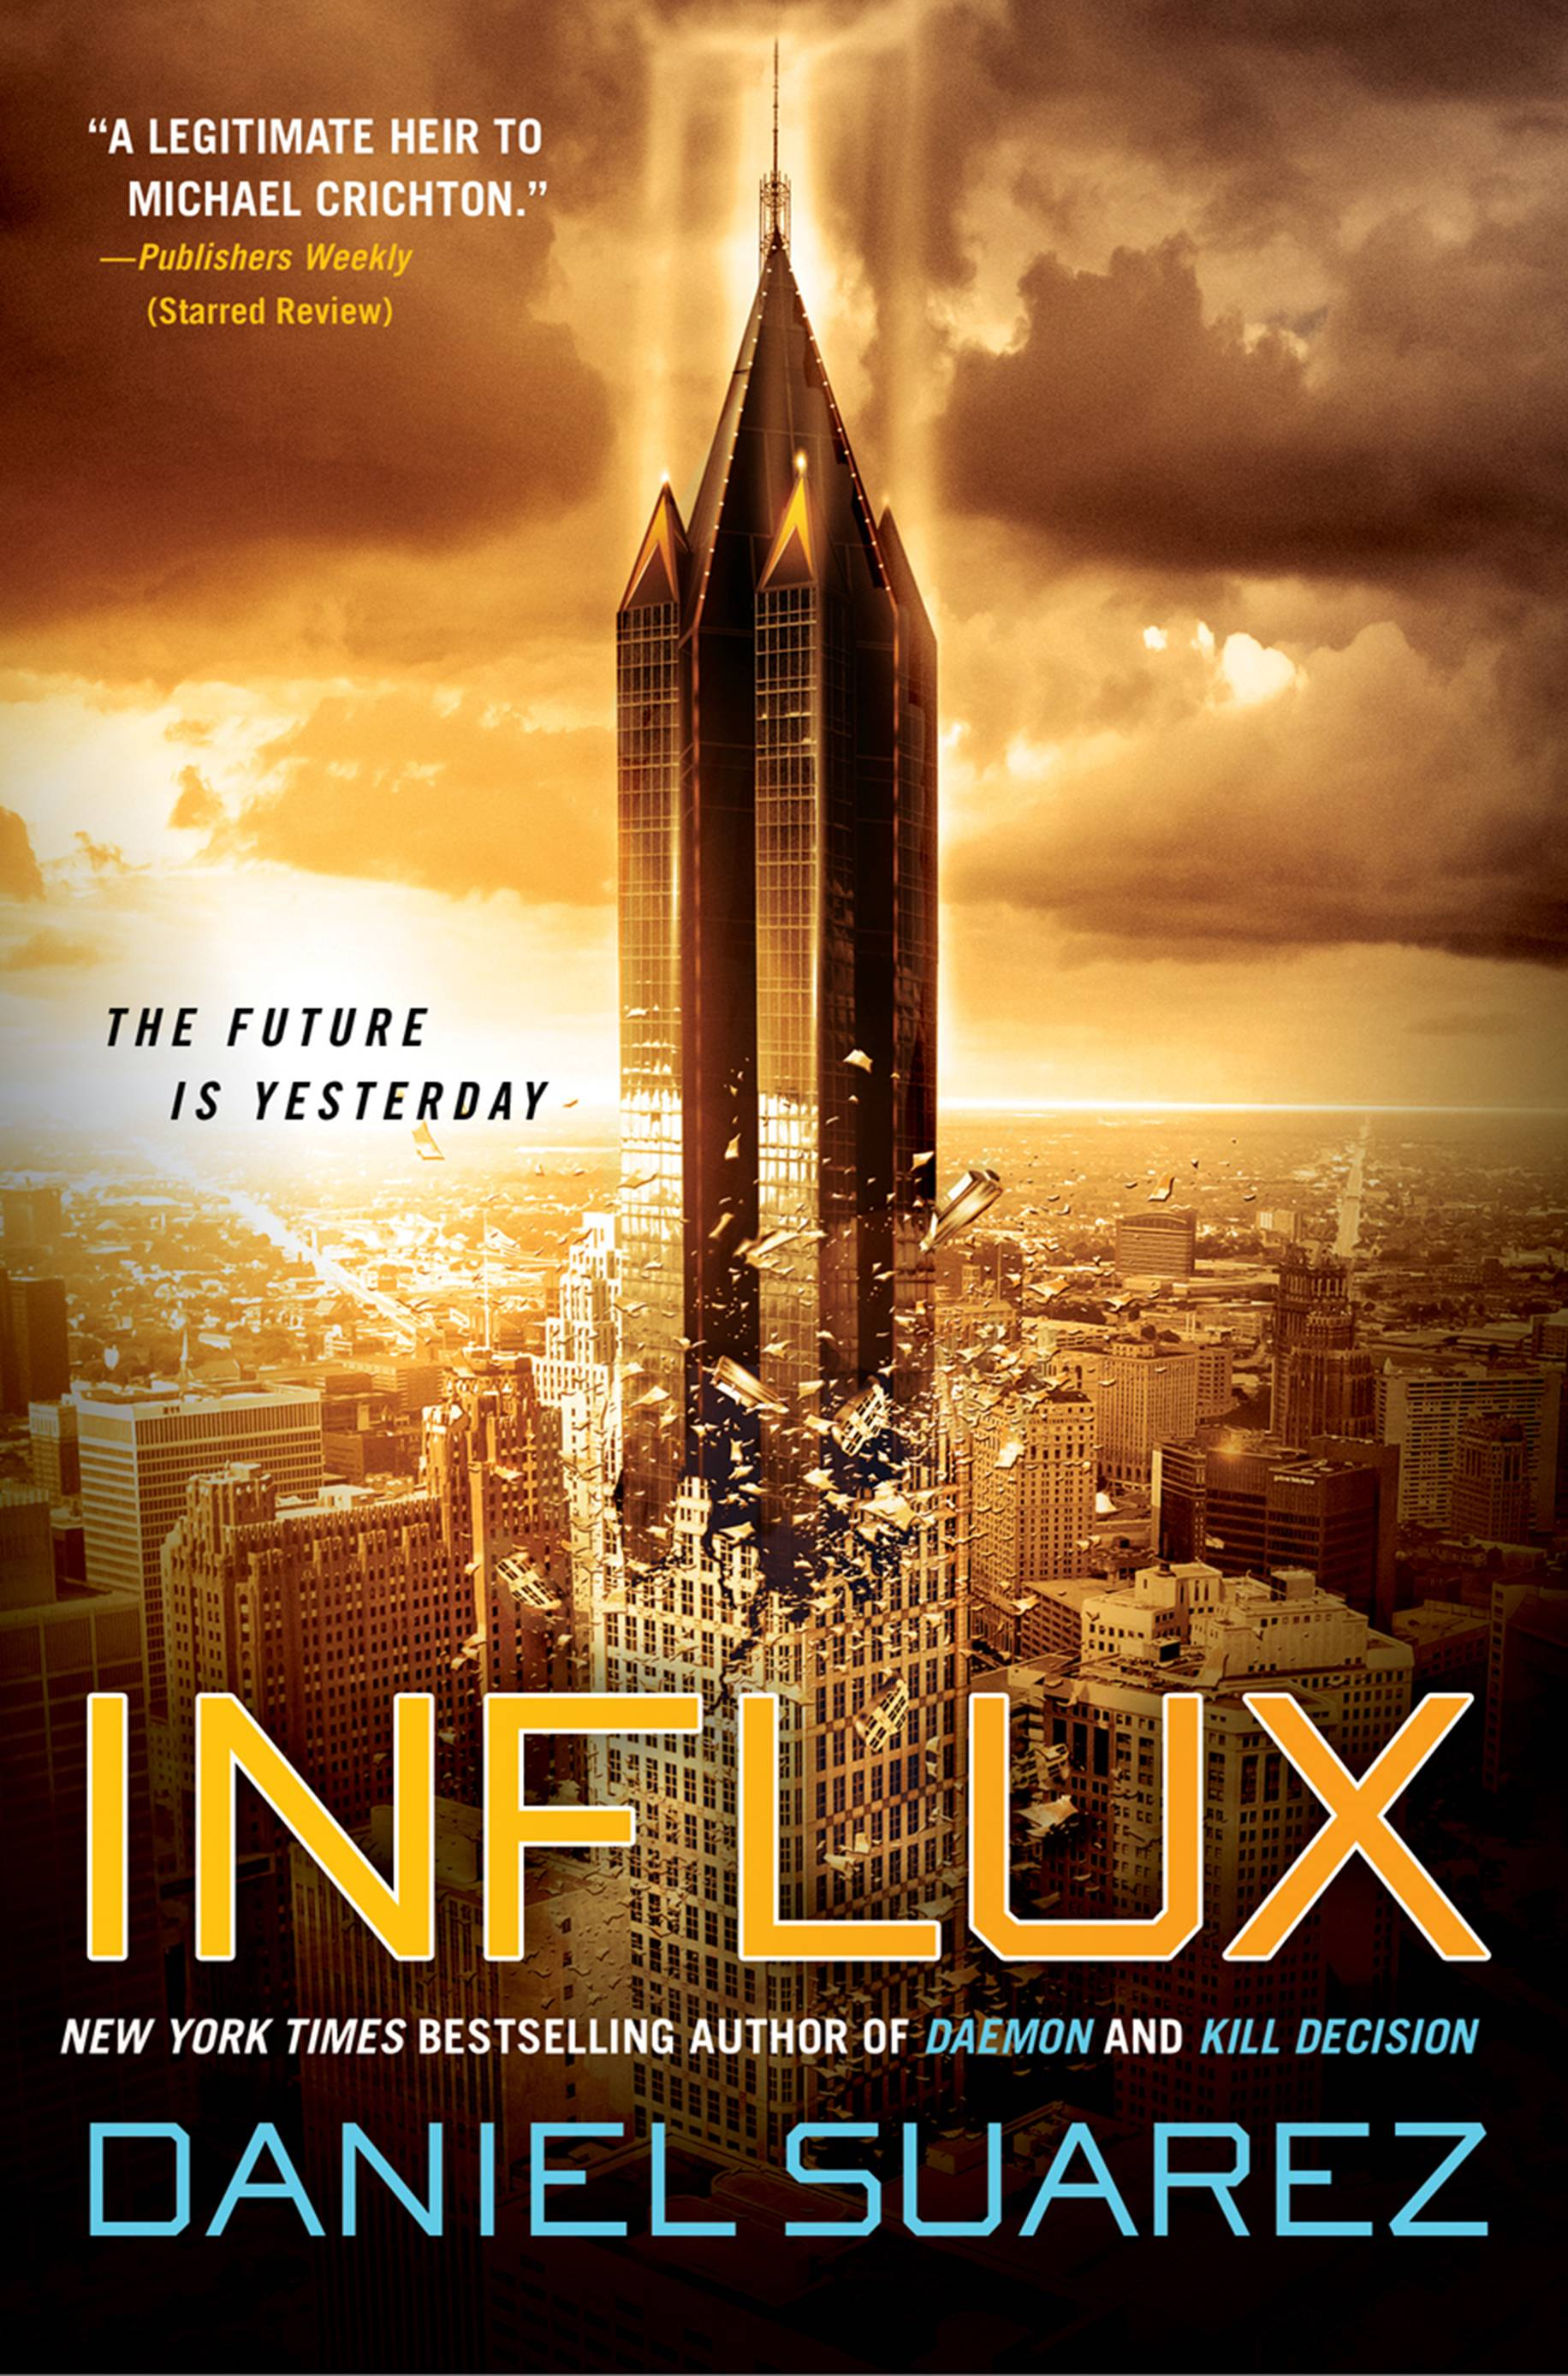 """Influx"" by Daniel Suarez brings up intriguing questions ripe for discussion."